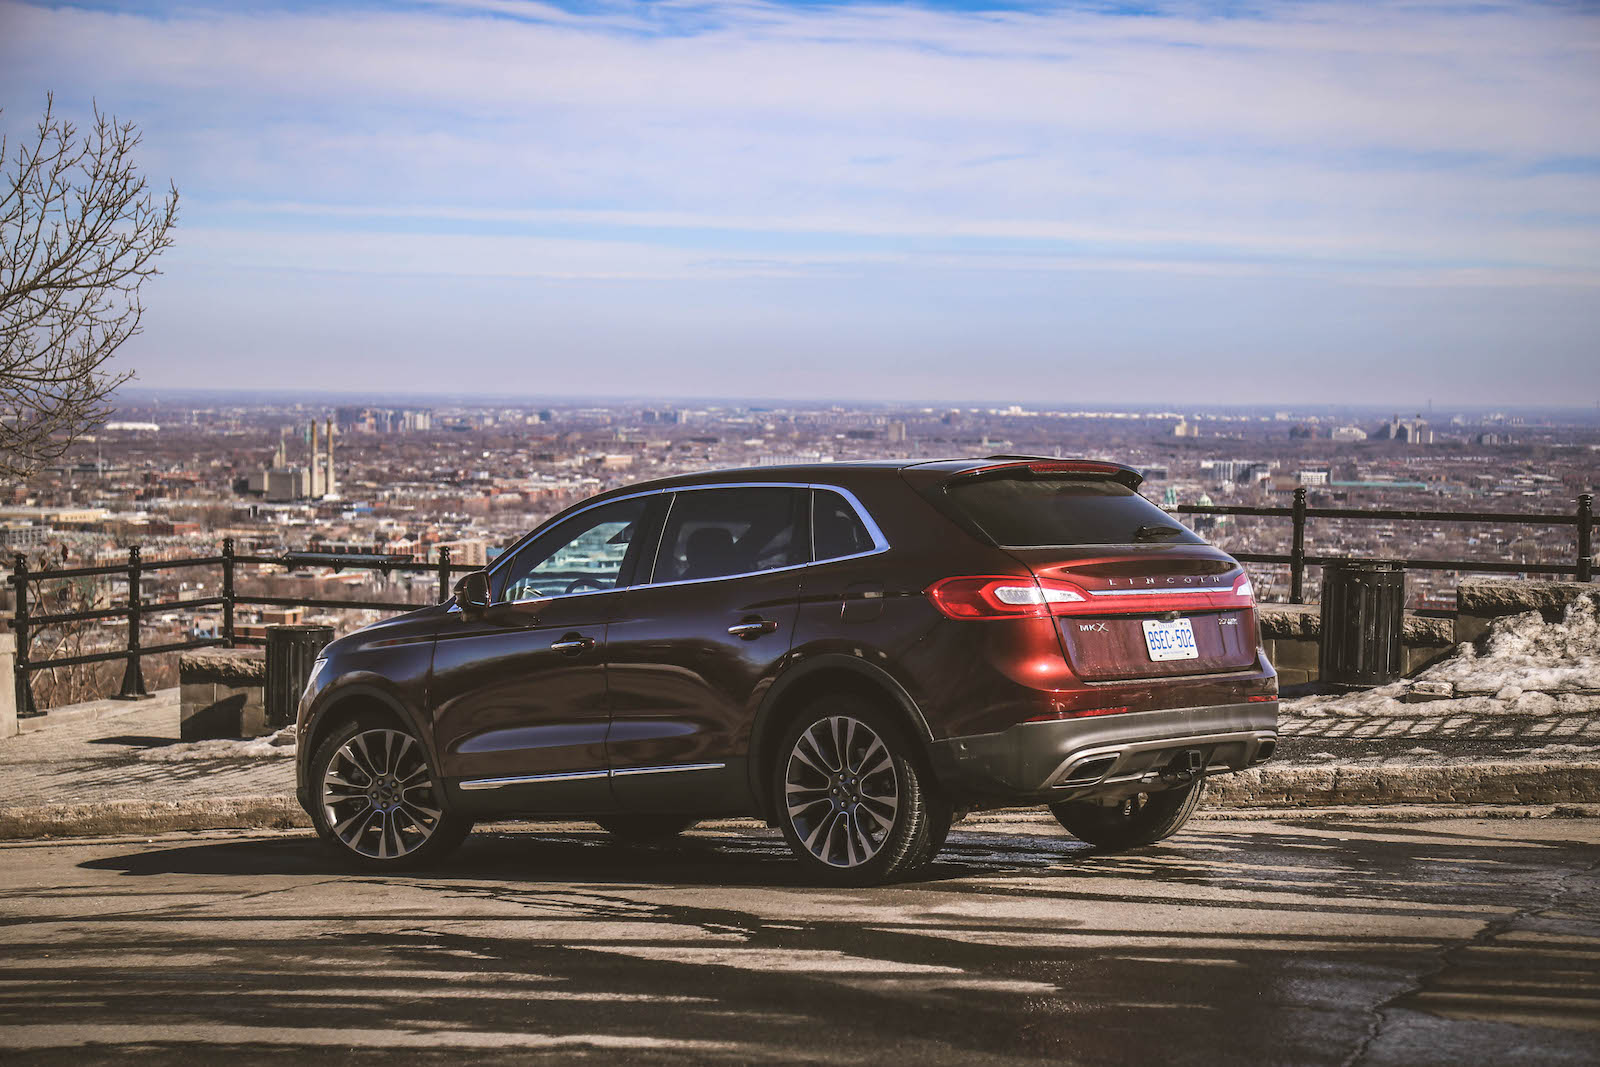 Road Trip To Montreal In A 2016 Lincoln Mkx Canadian: lincoln motor company canada